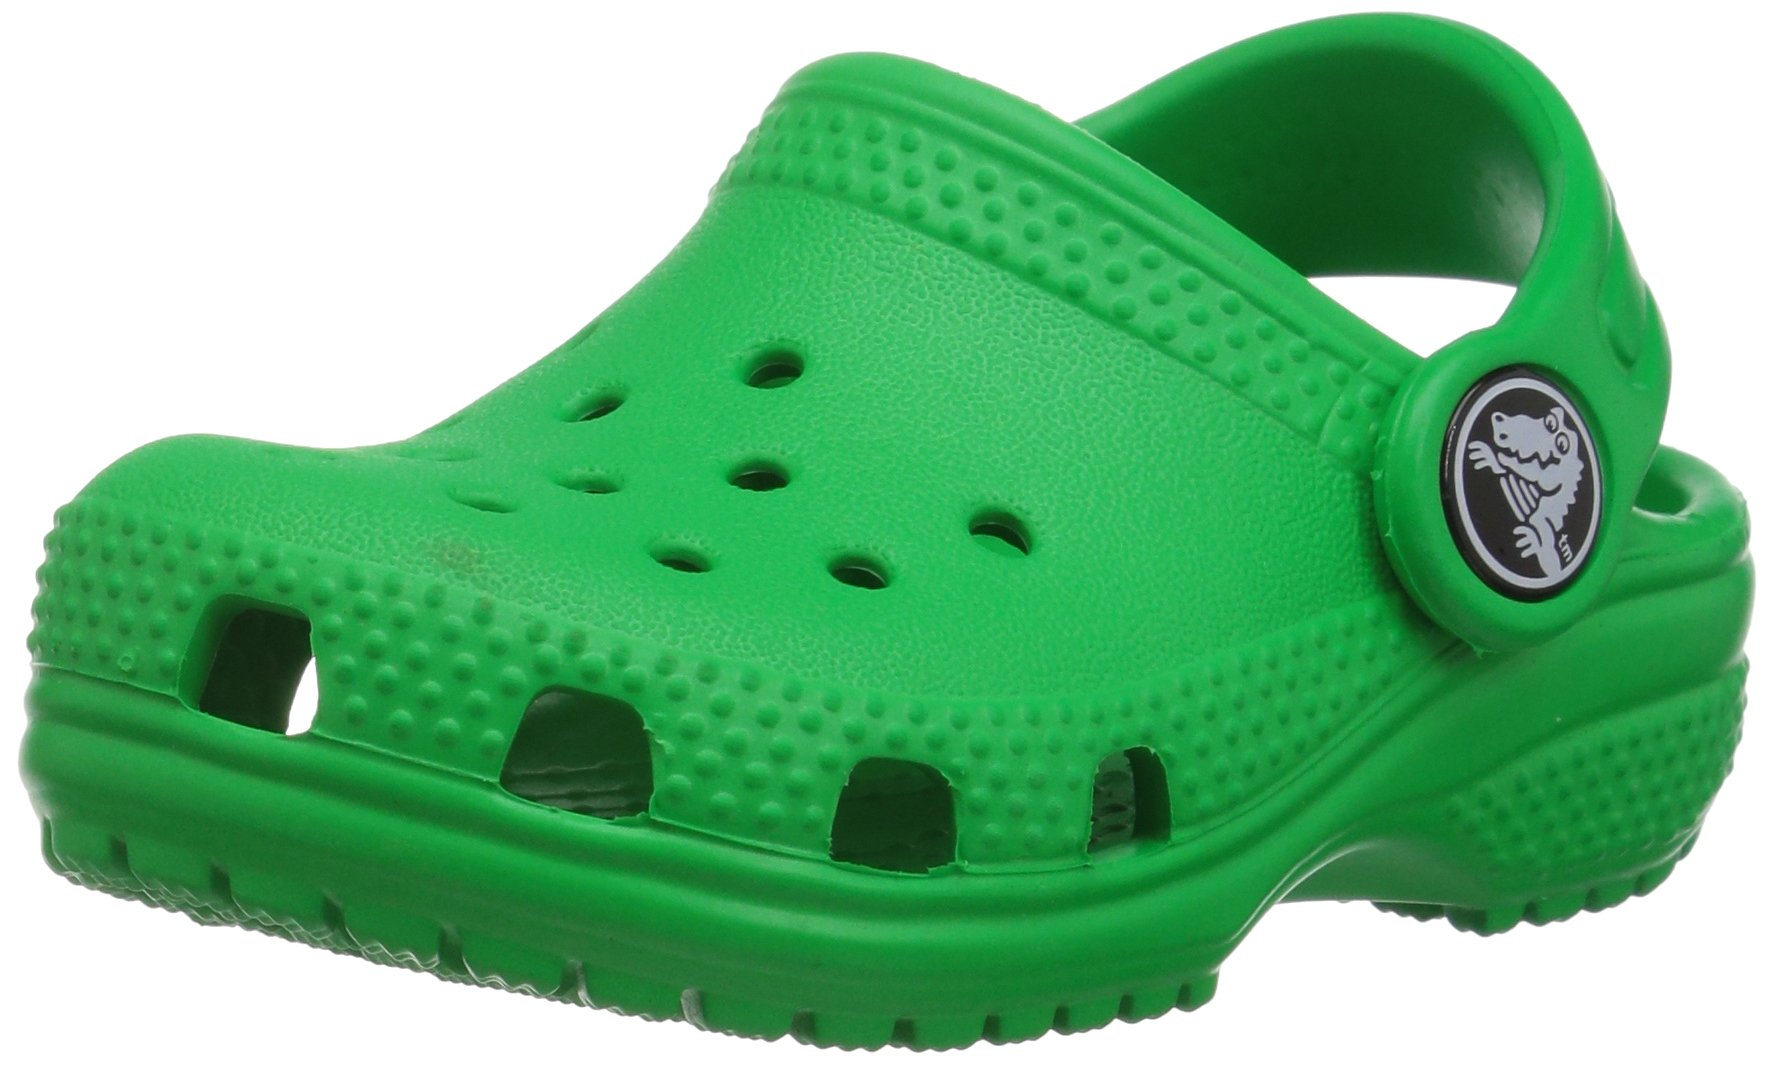 crocs unisex-baby Classic Clog K Shoe, grass green, 6 M US Toddler by Crocs